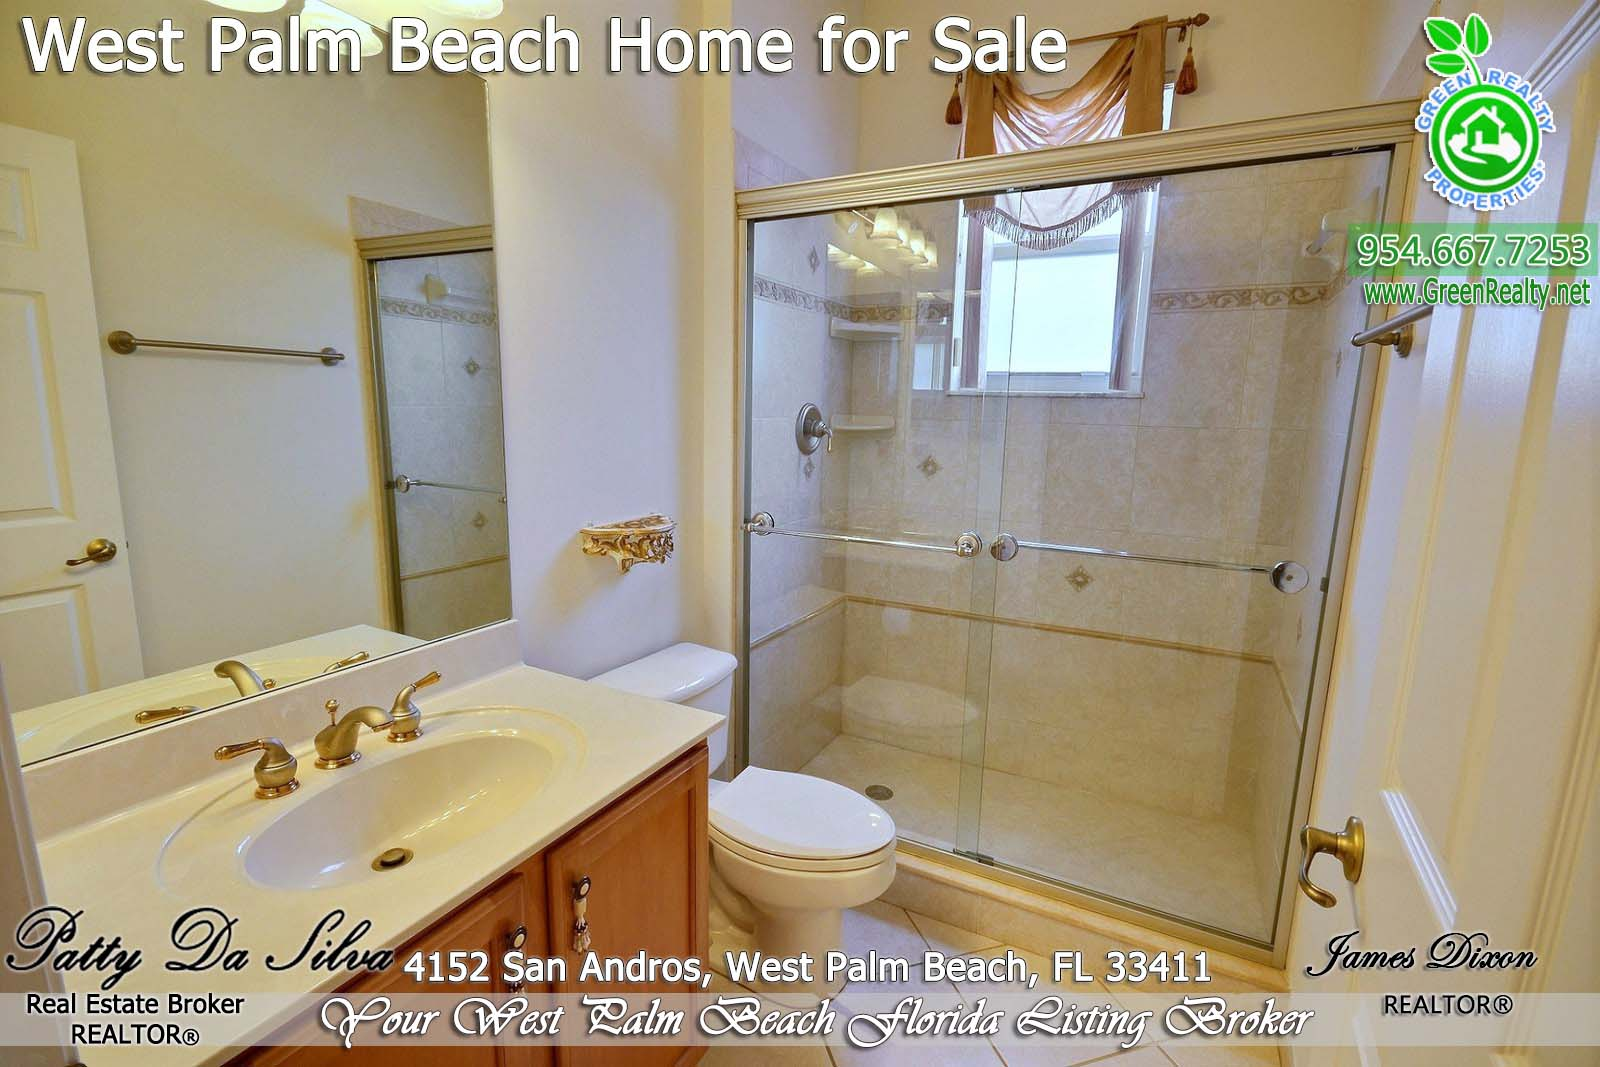 West Palm Beach Real Estate - 4152 San Andros (19)_1